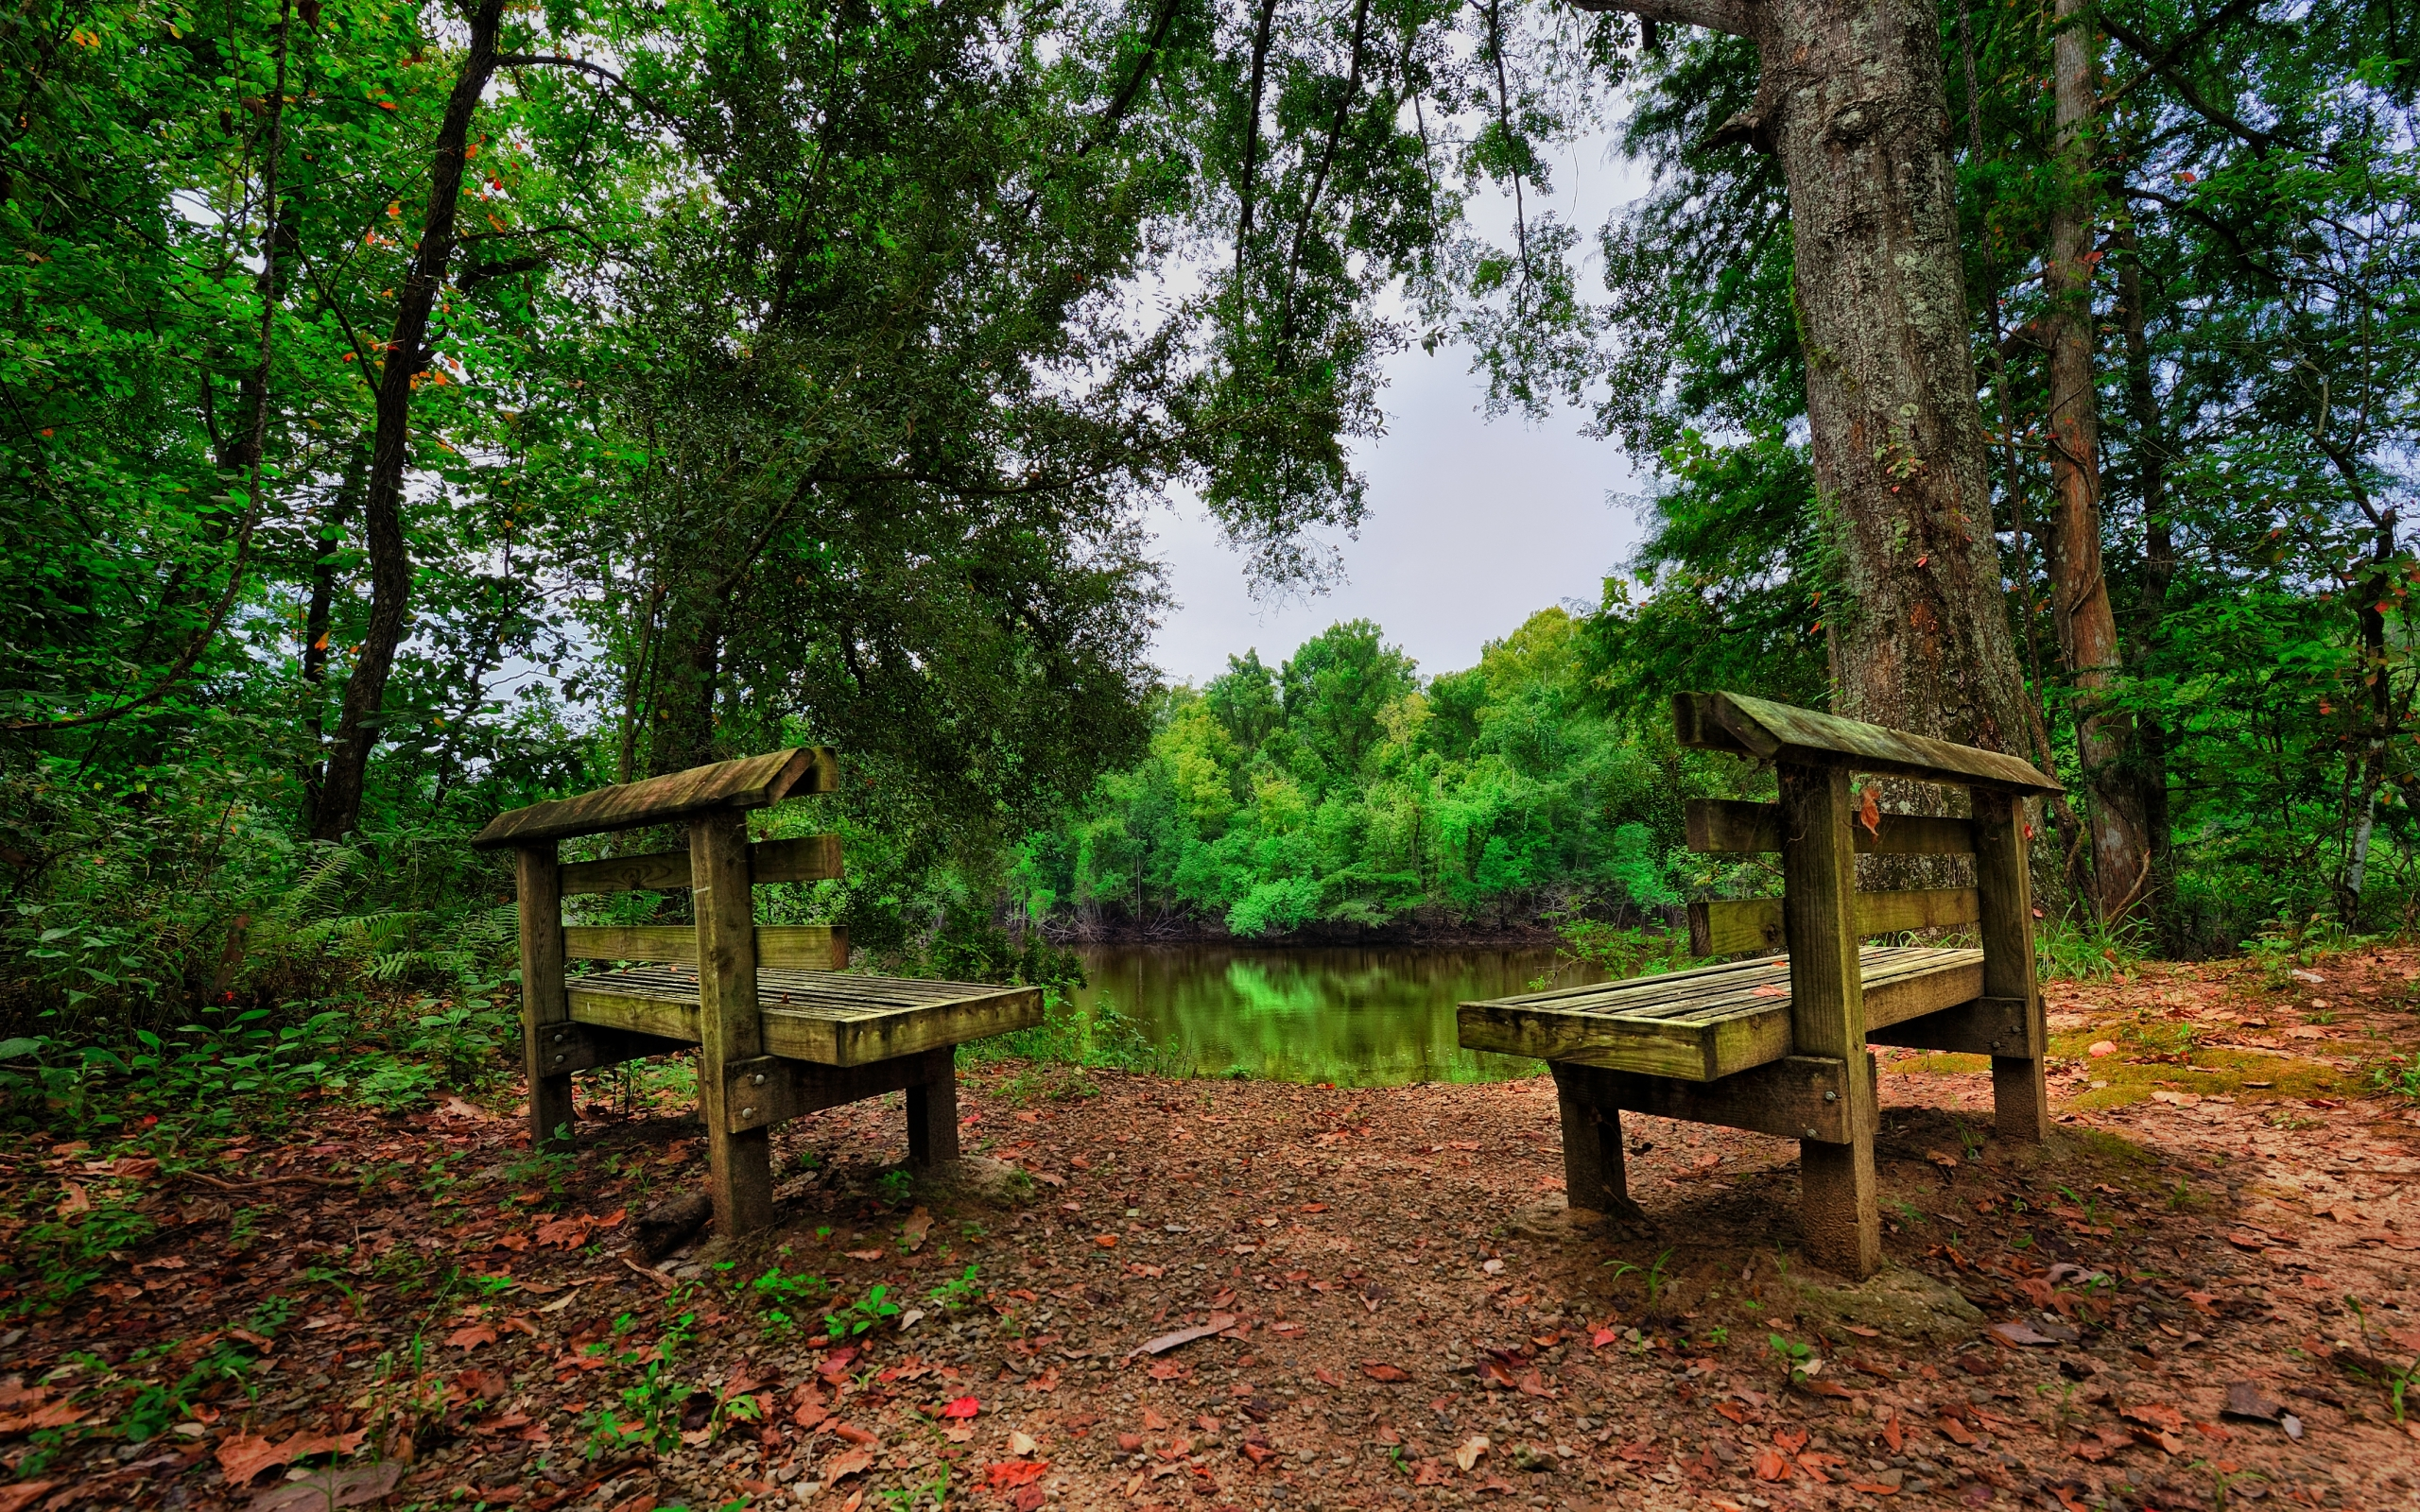 Fall Wooded Wallpaper Bench Hd Wallpaper Background Image 2560x1600 Id